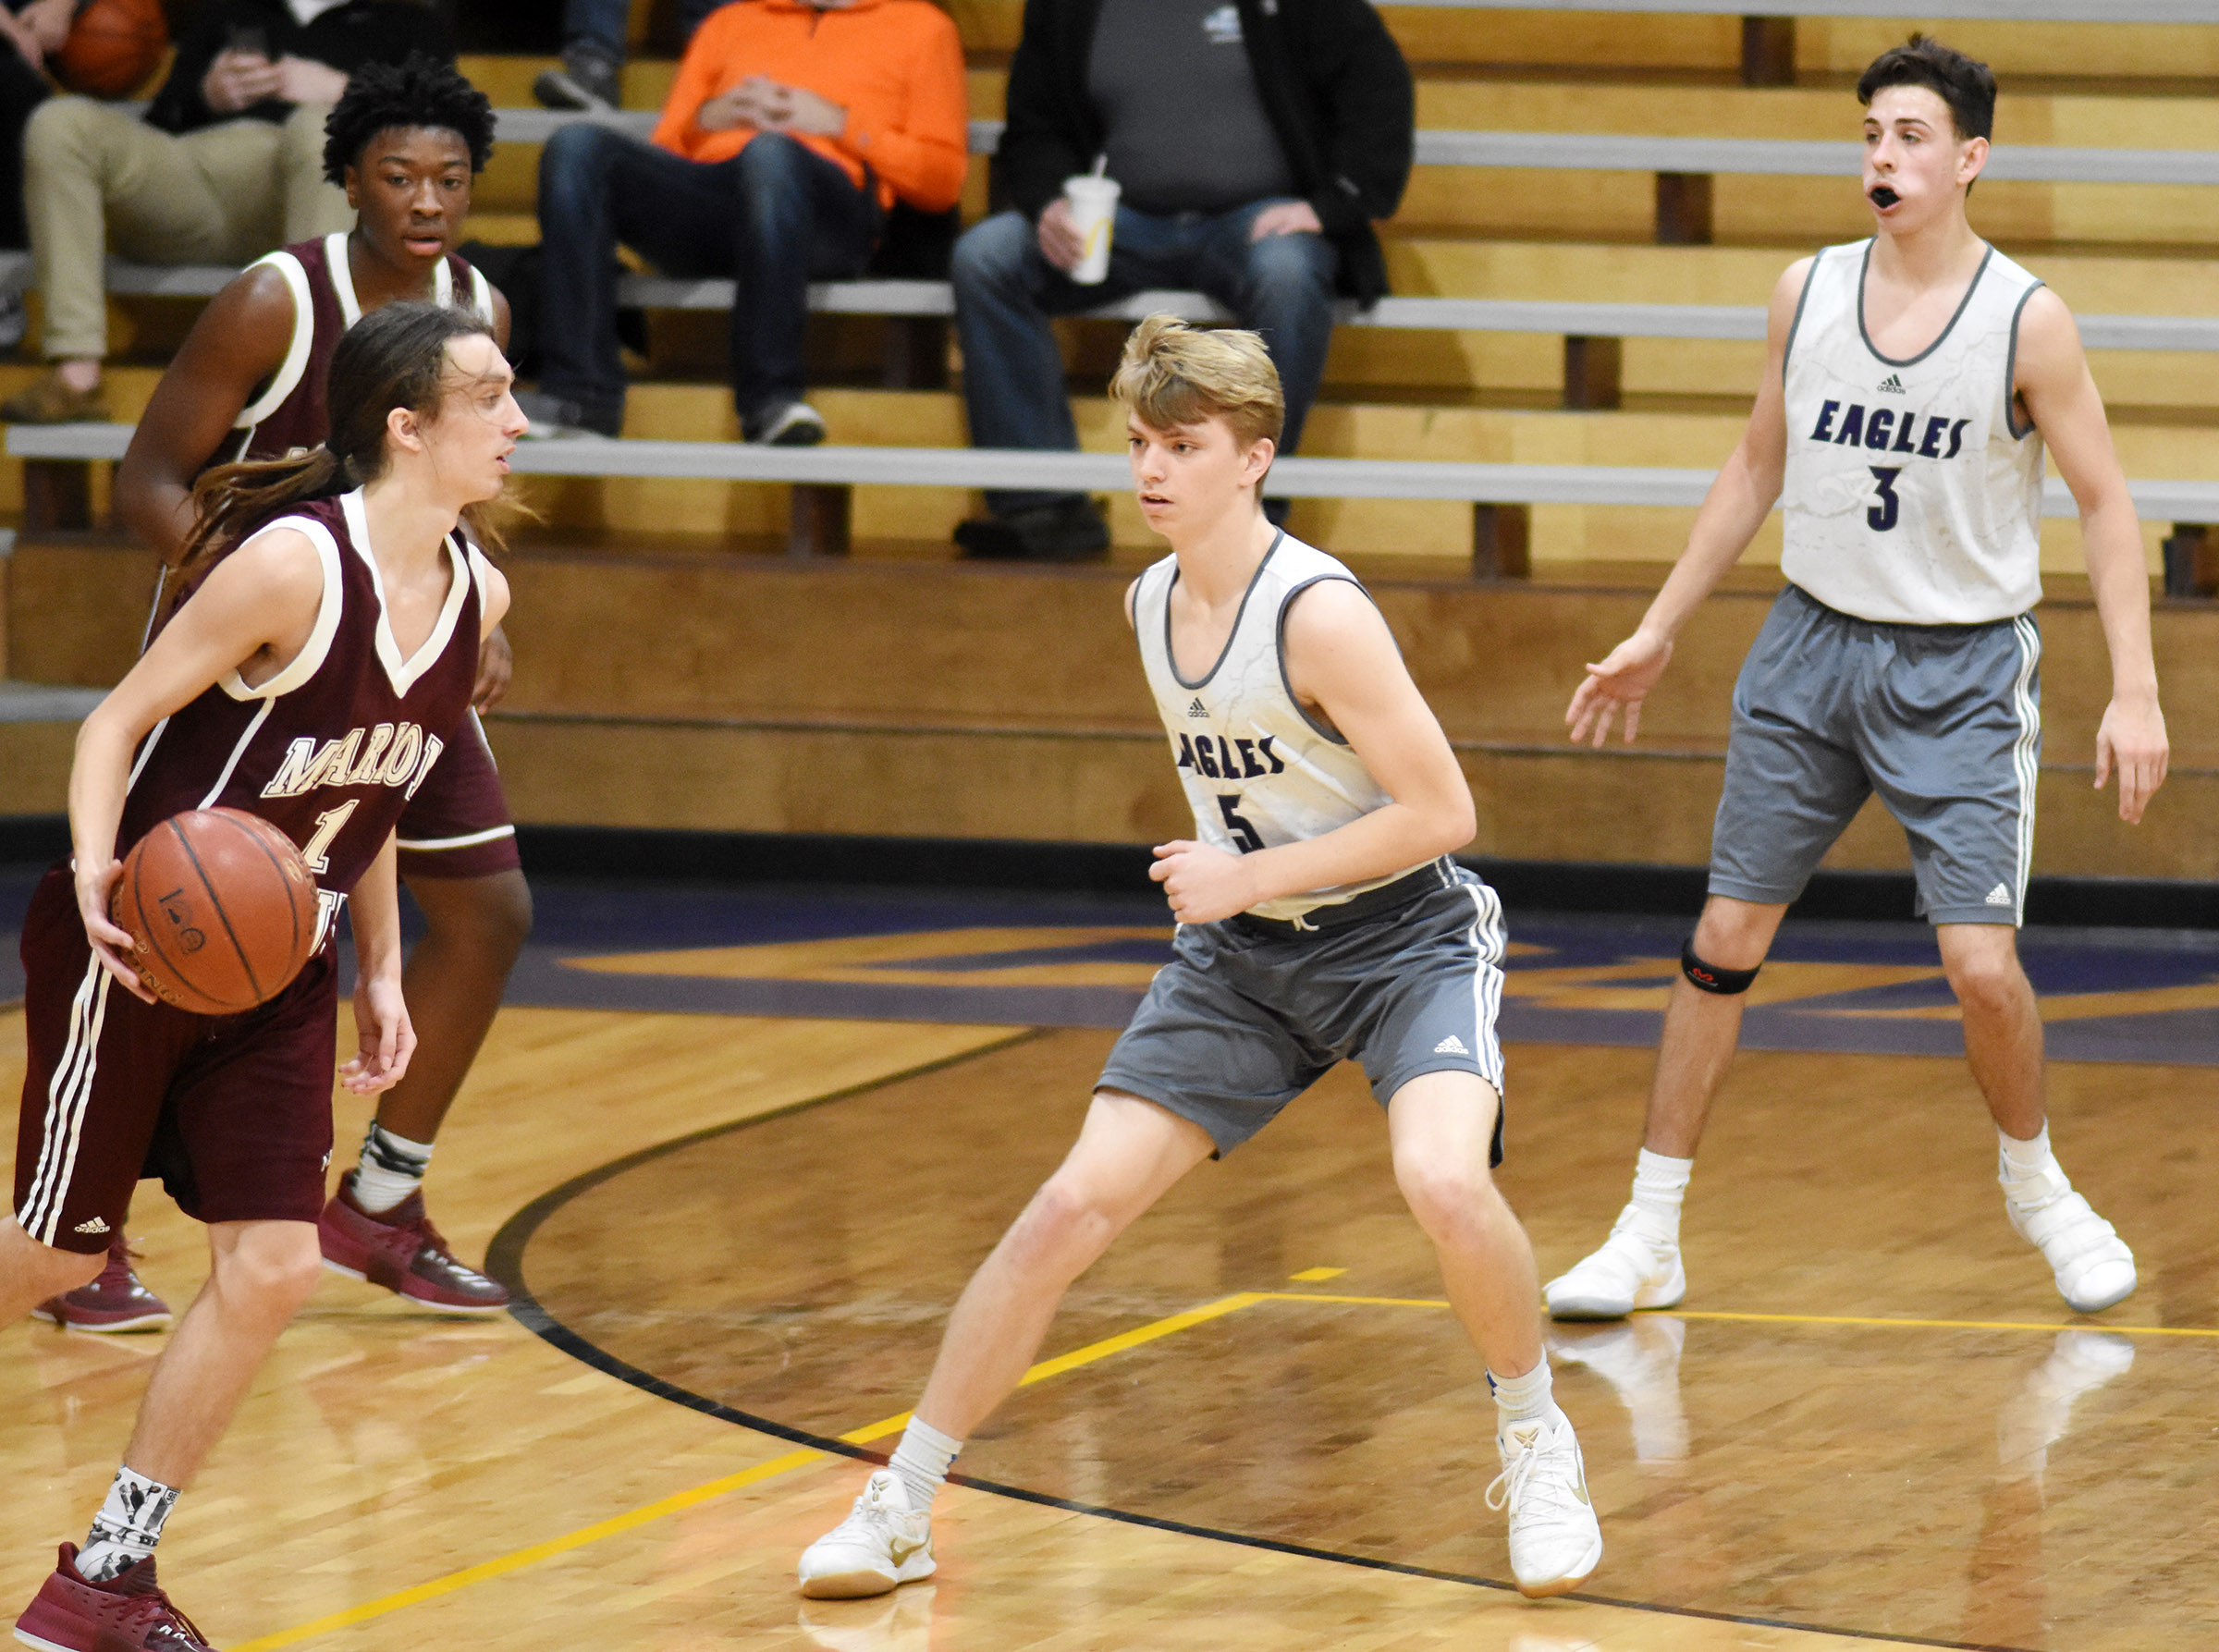 CHS freshman Arren Hash, center, and John Orberson play defense.